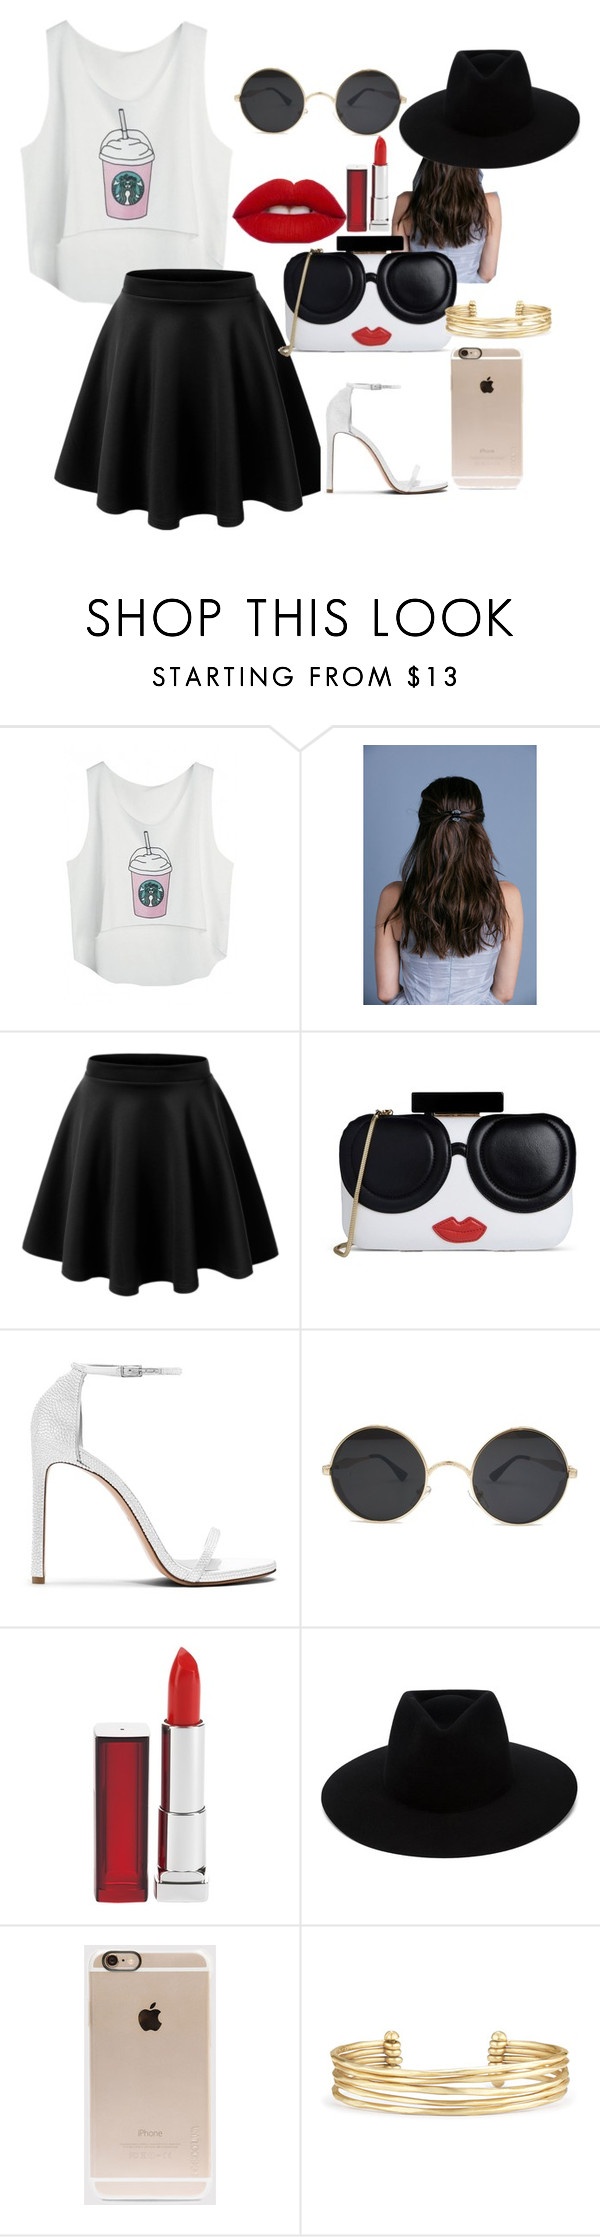 """red"" by conceitedbrat on Polyvore featuring Alice + Olivia, Maybelline, rag & bone, Incase and Stella & Dot"